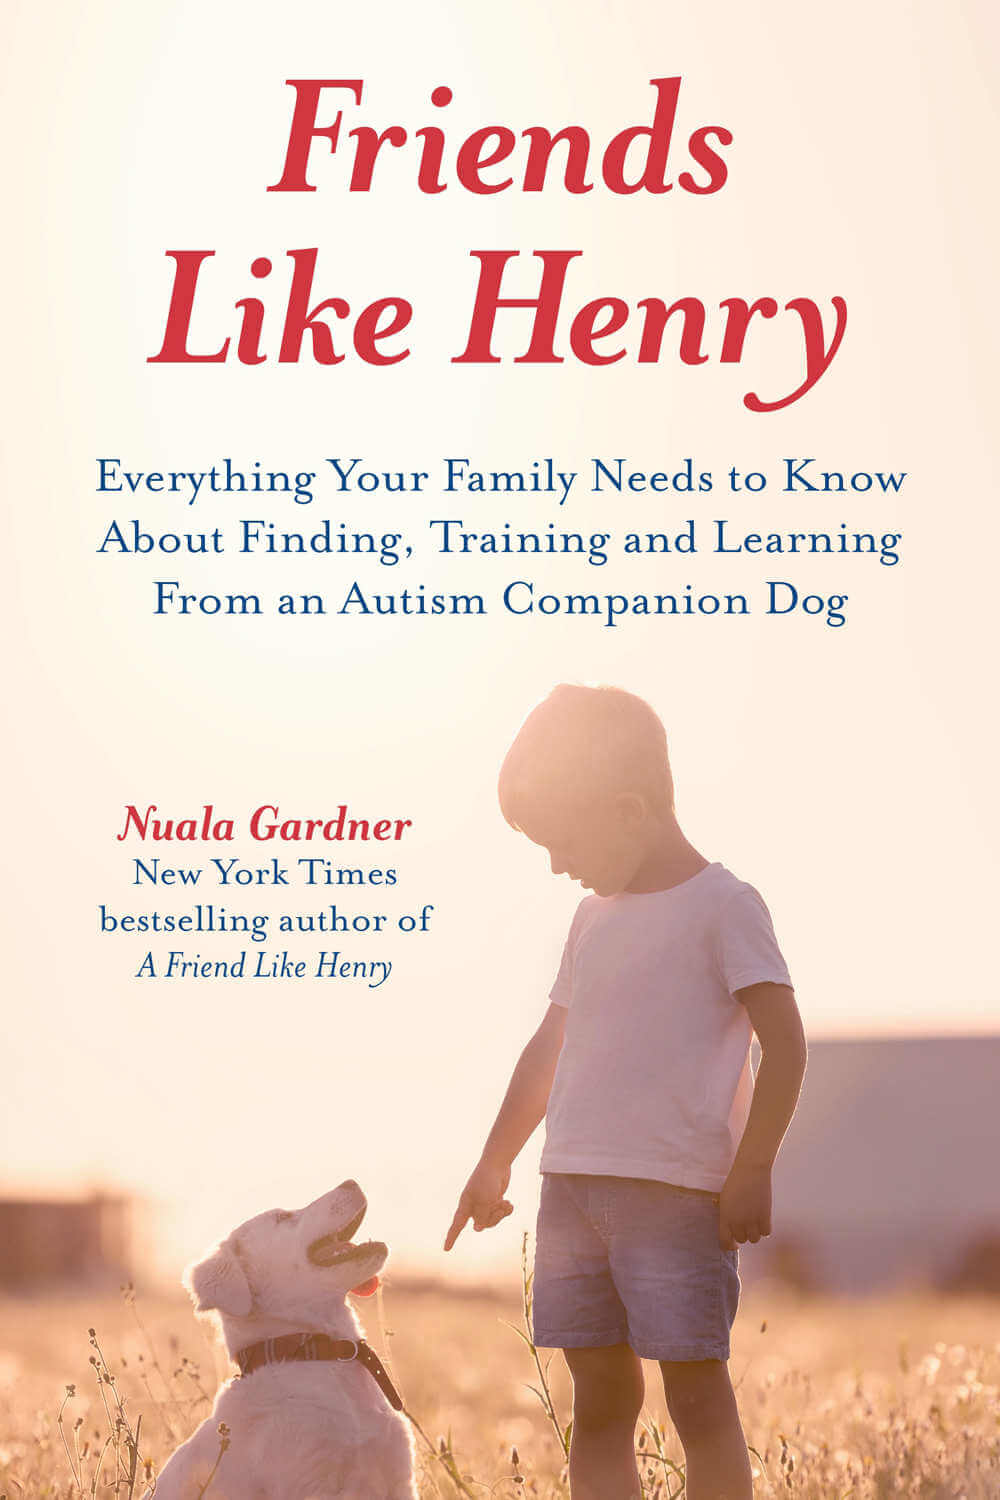 Friends Like Henry - Everything your family needs to know about finding, training and learning from an autism companion dog